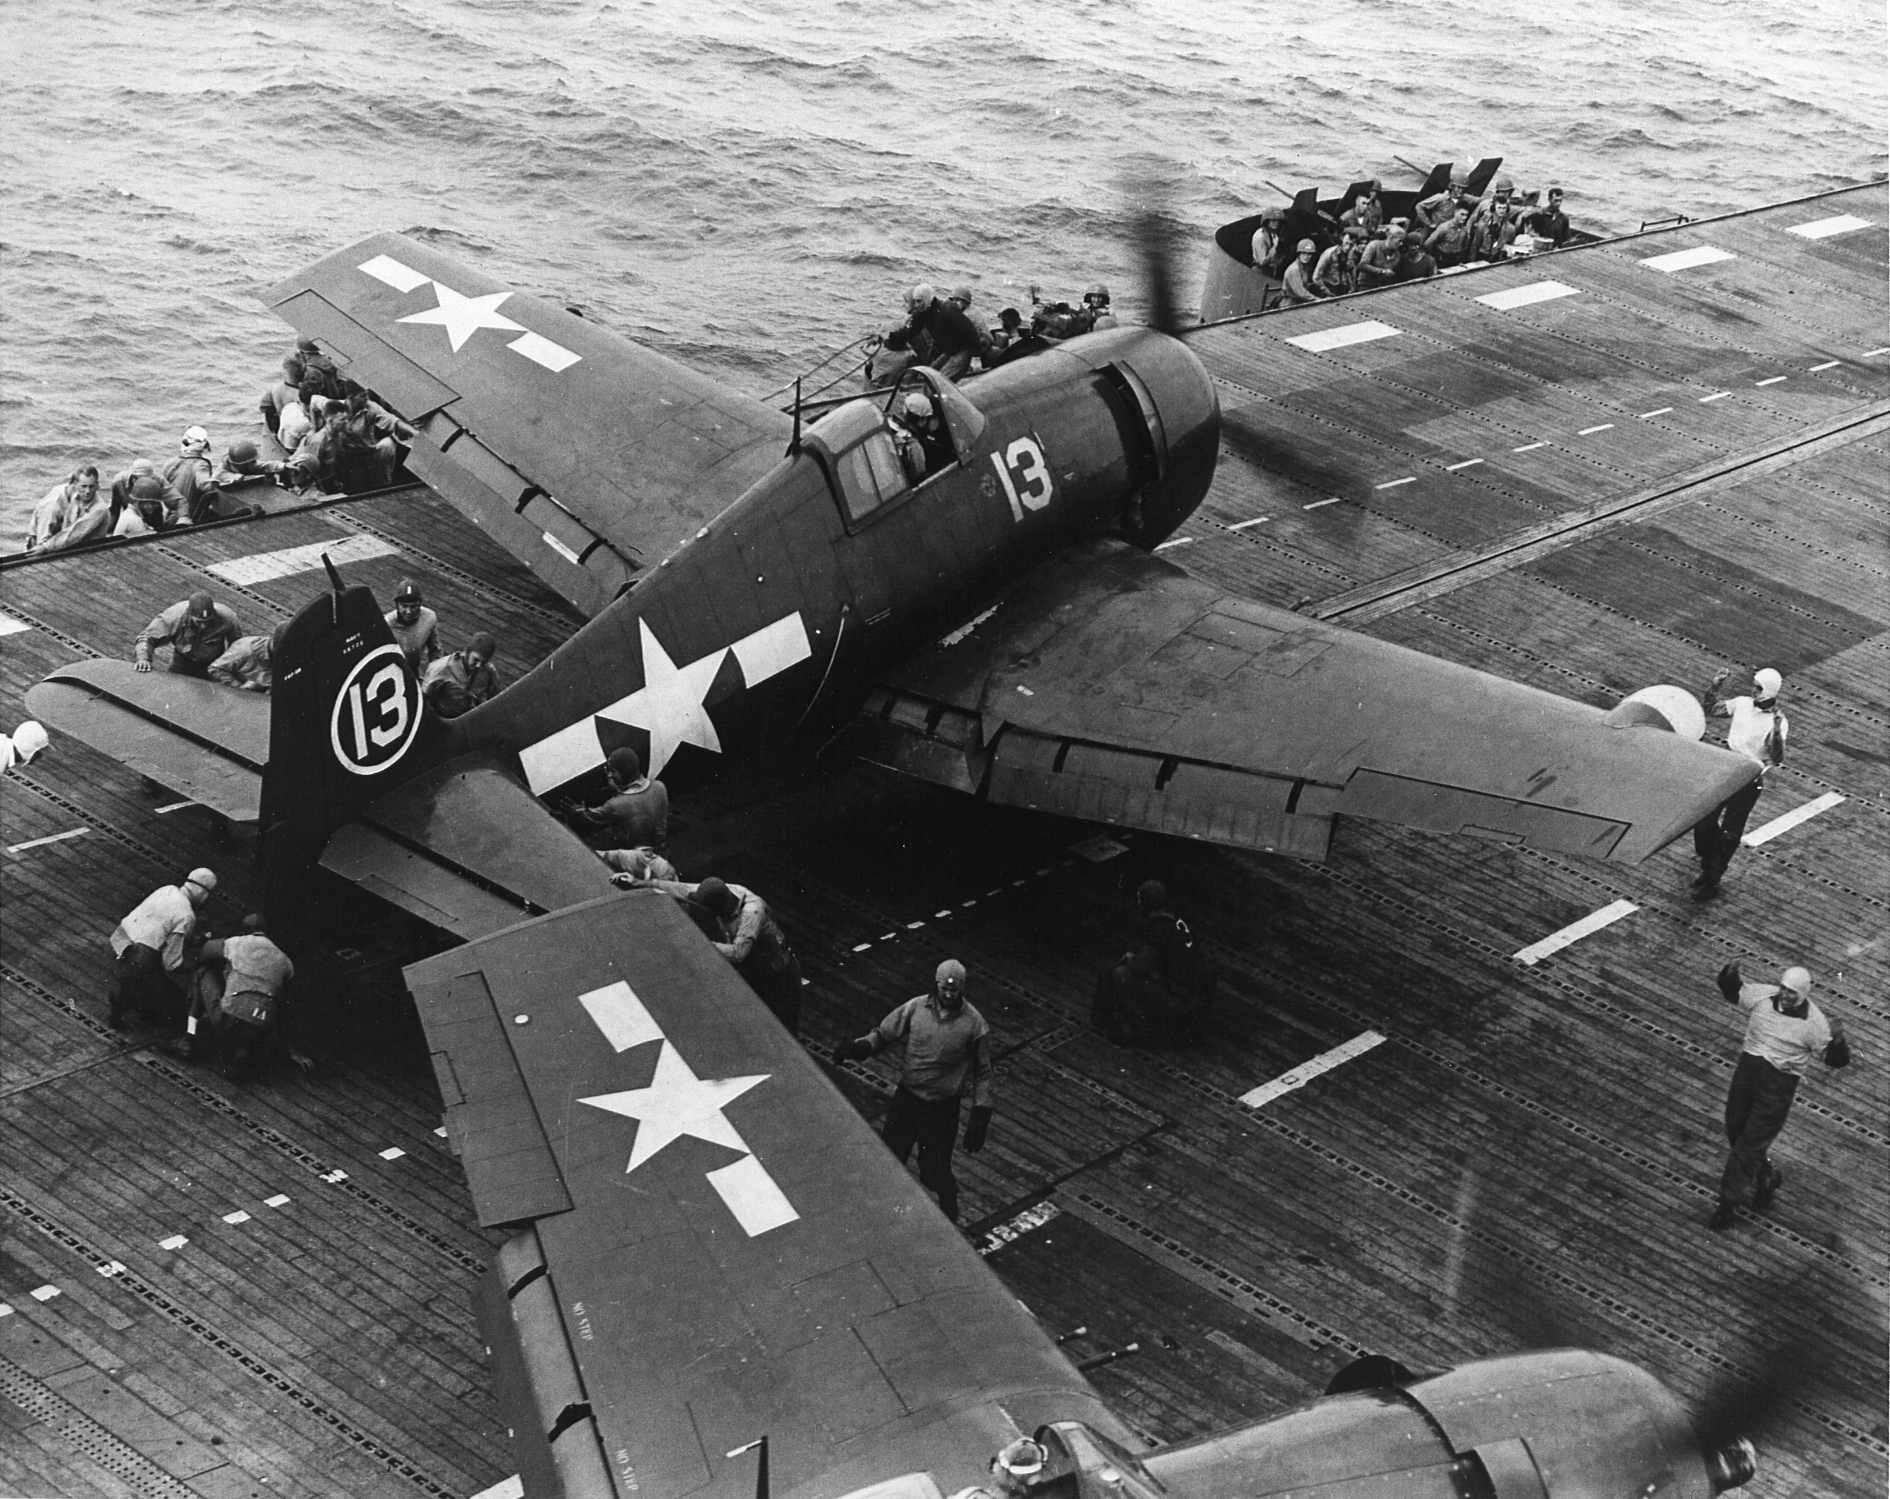 Grumman F6F 5N Hellcat VFN 41 White 13 about to be lauched from CVL 22 USS Independence 01